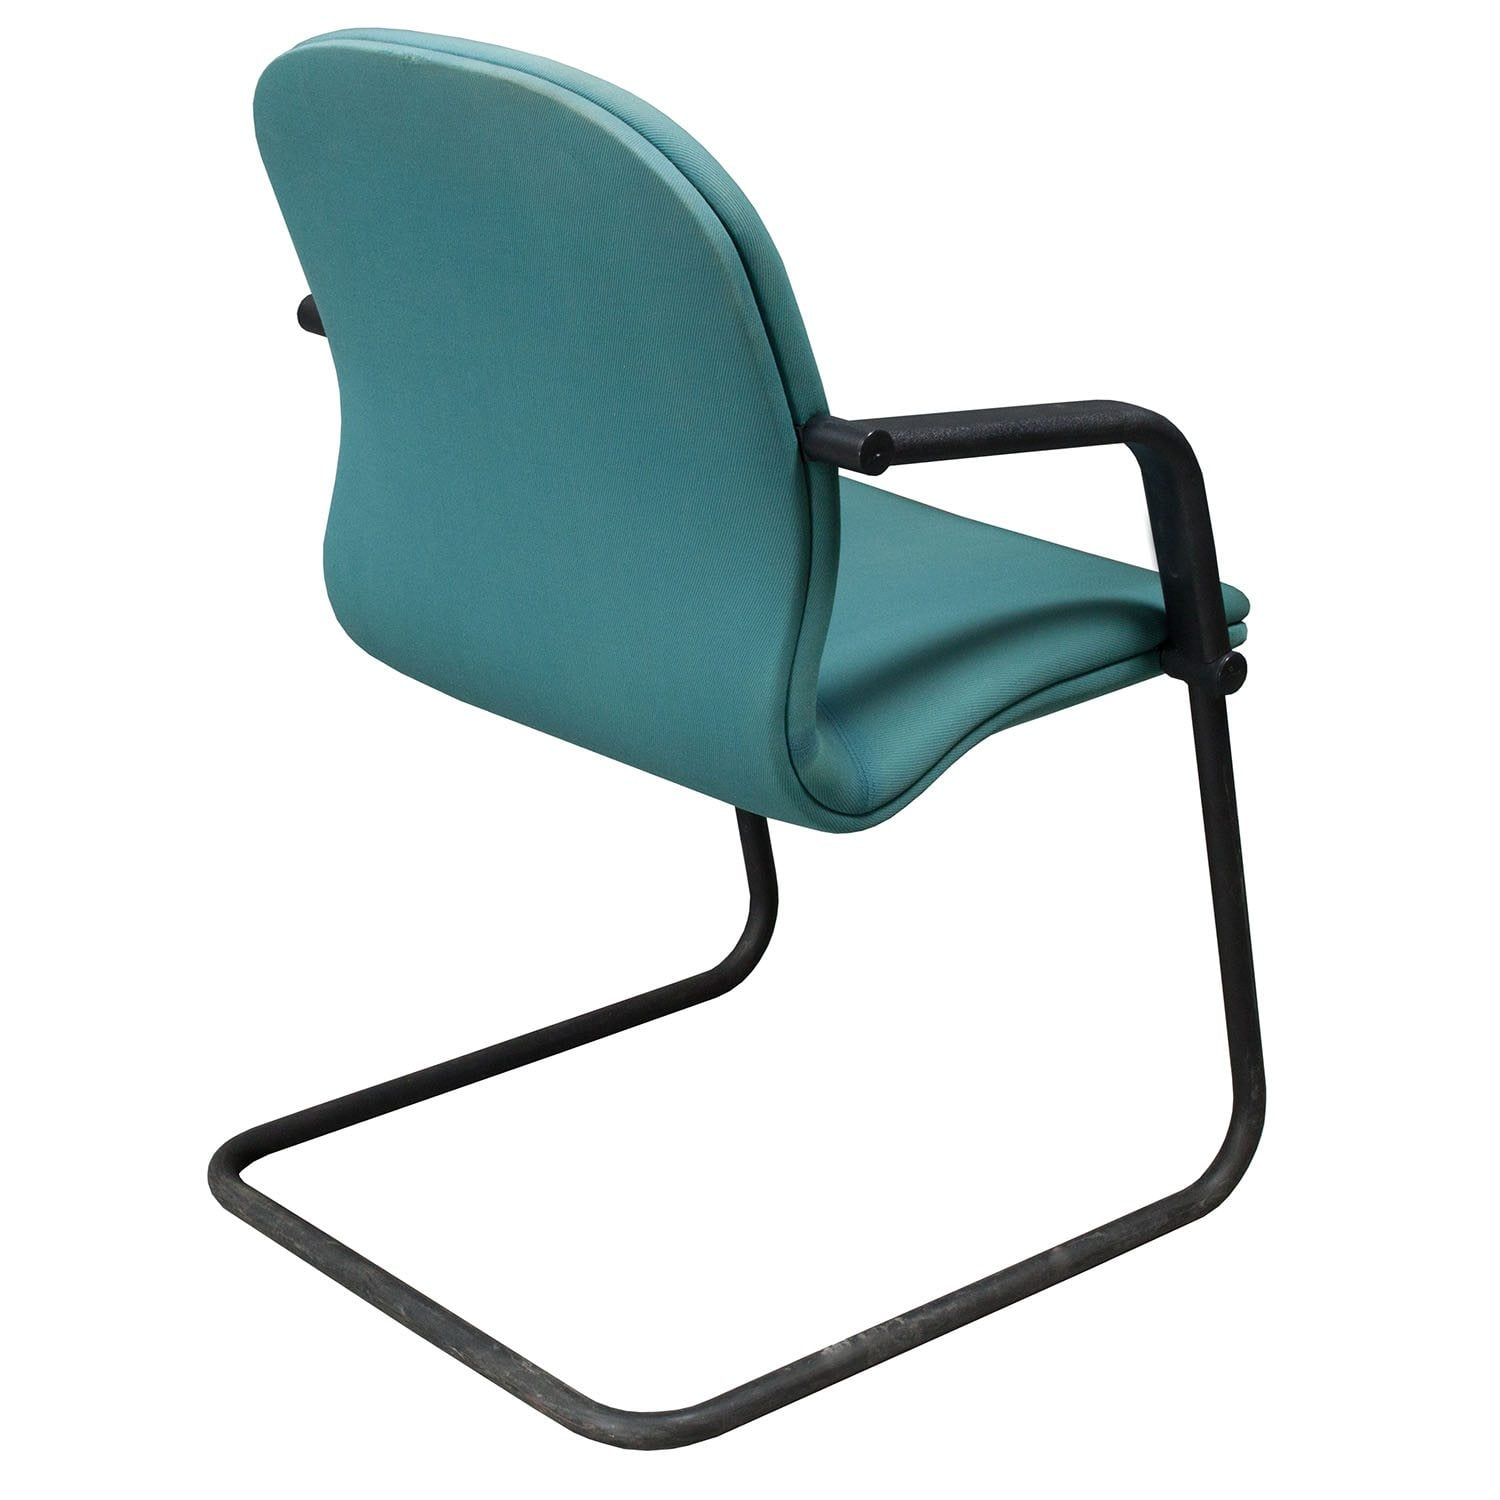 aqua desk chair gaming computer knoll reff used side